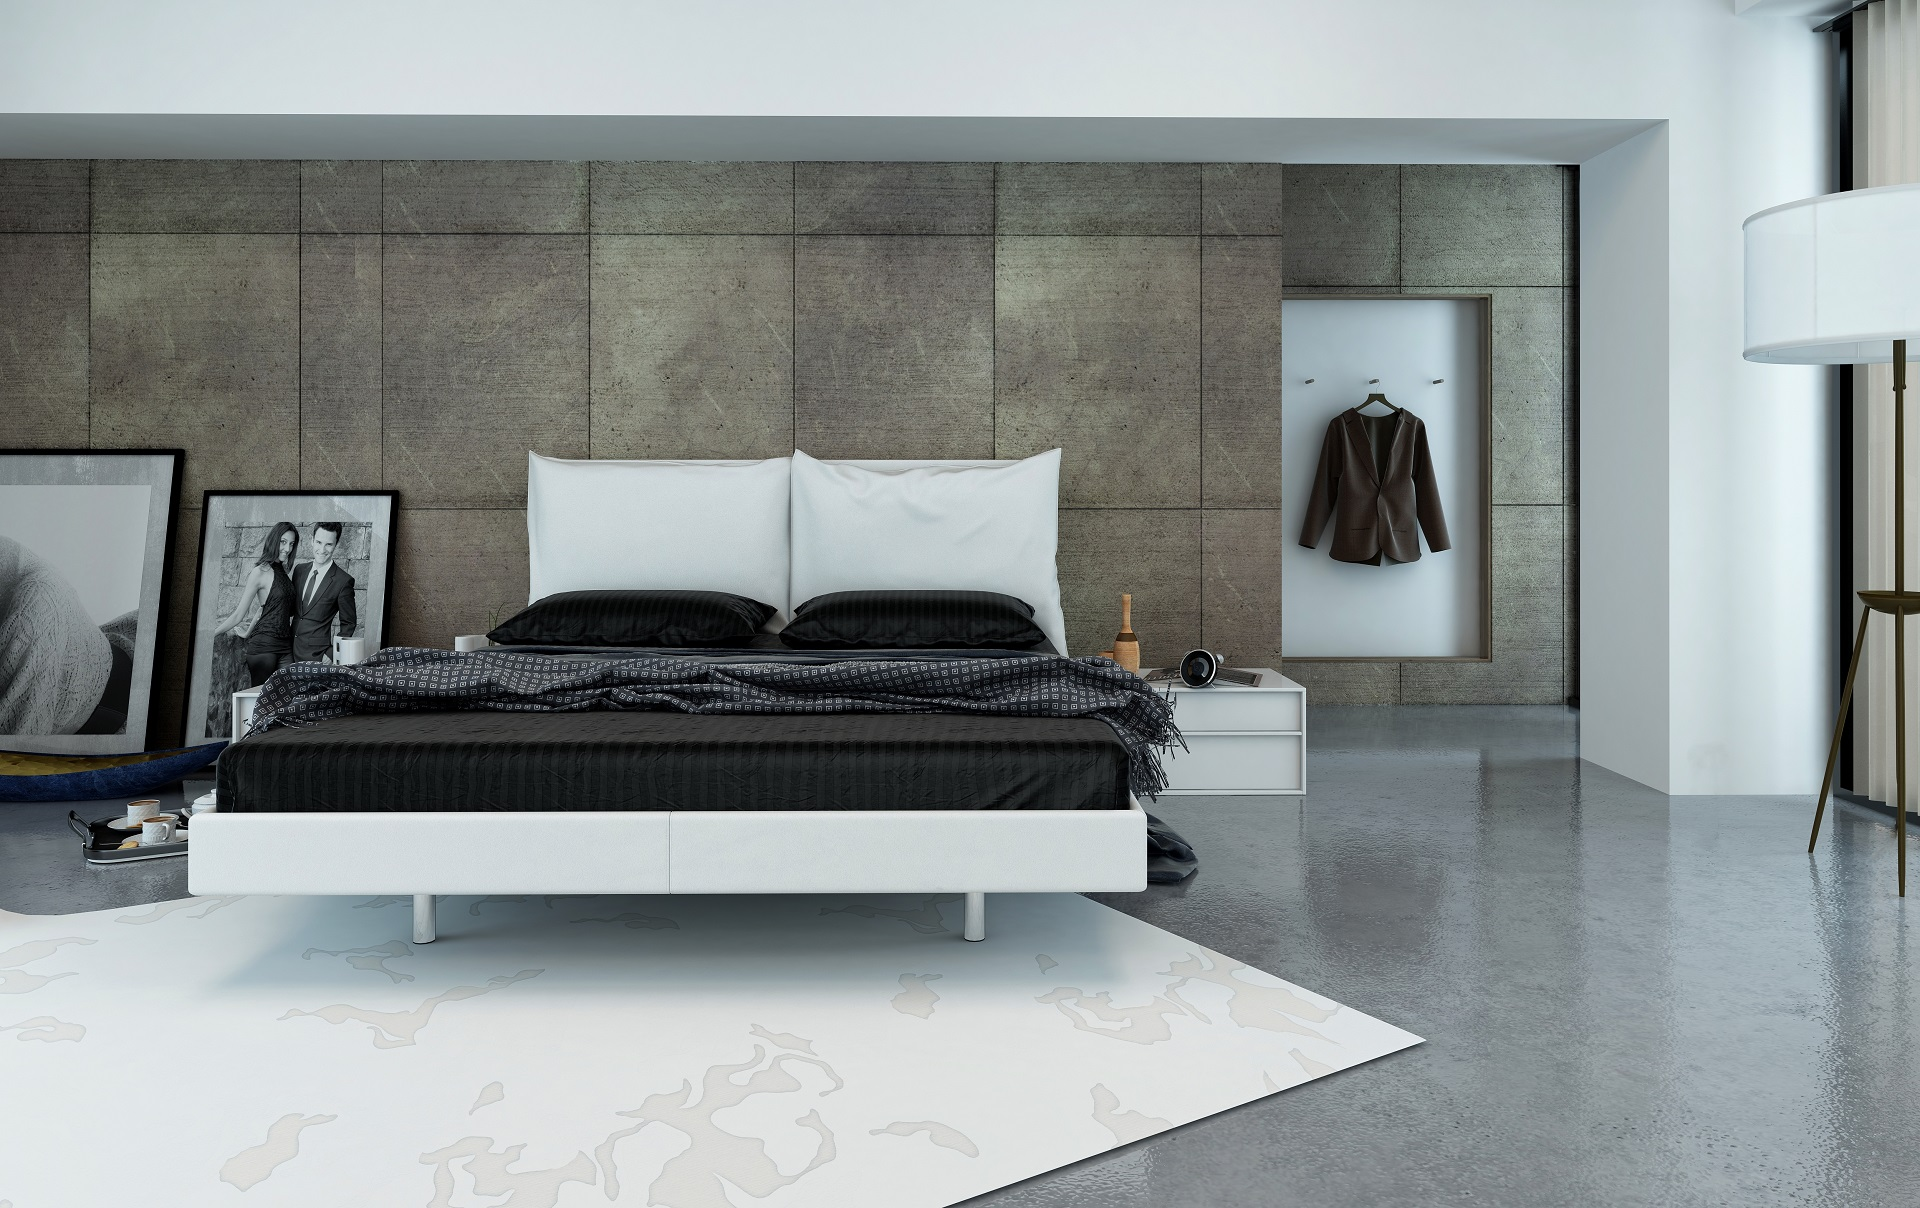 homepage asociace hotel a restaurac esk republiky. Black Bedroom Furniture Sets. Home Design Ideas